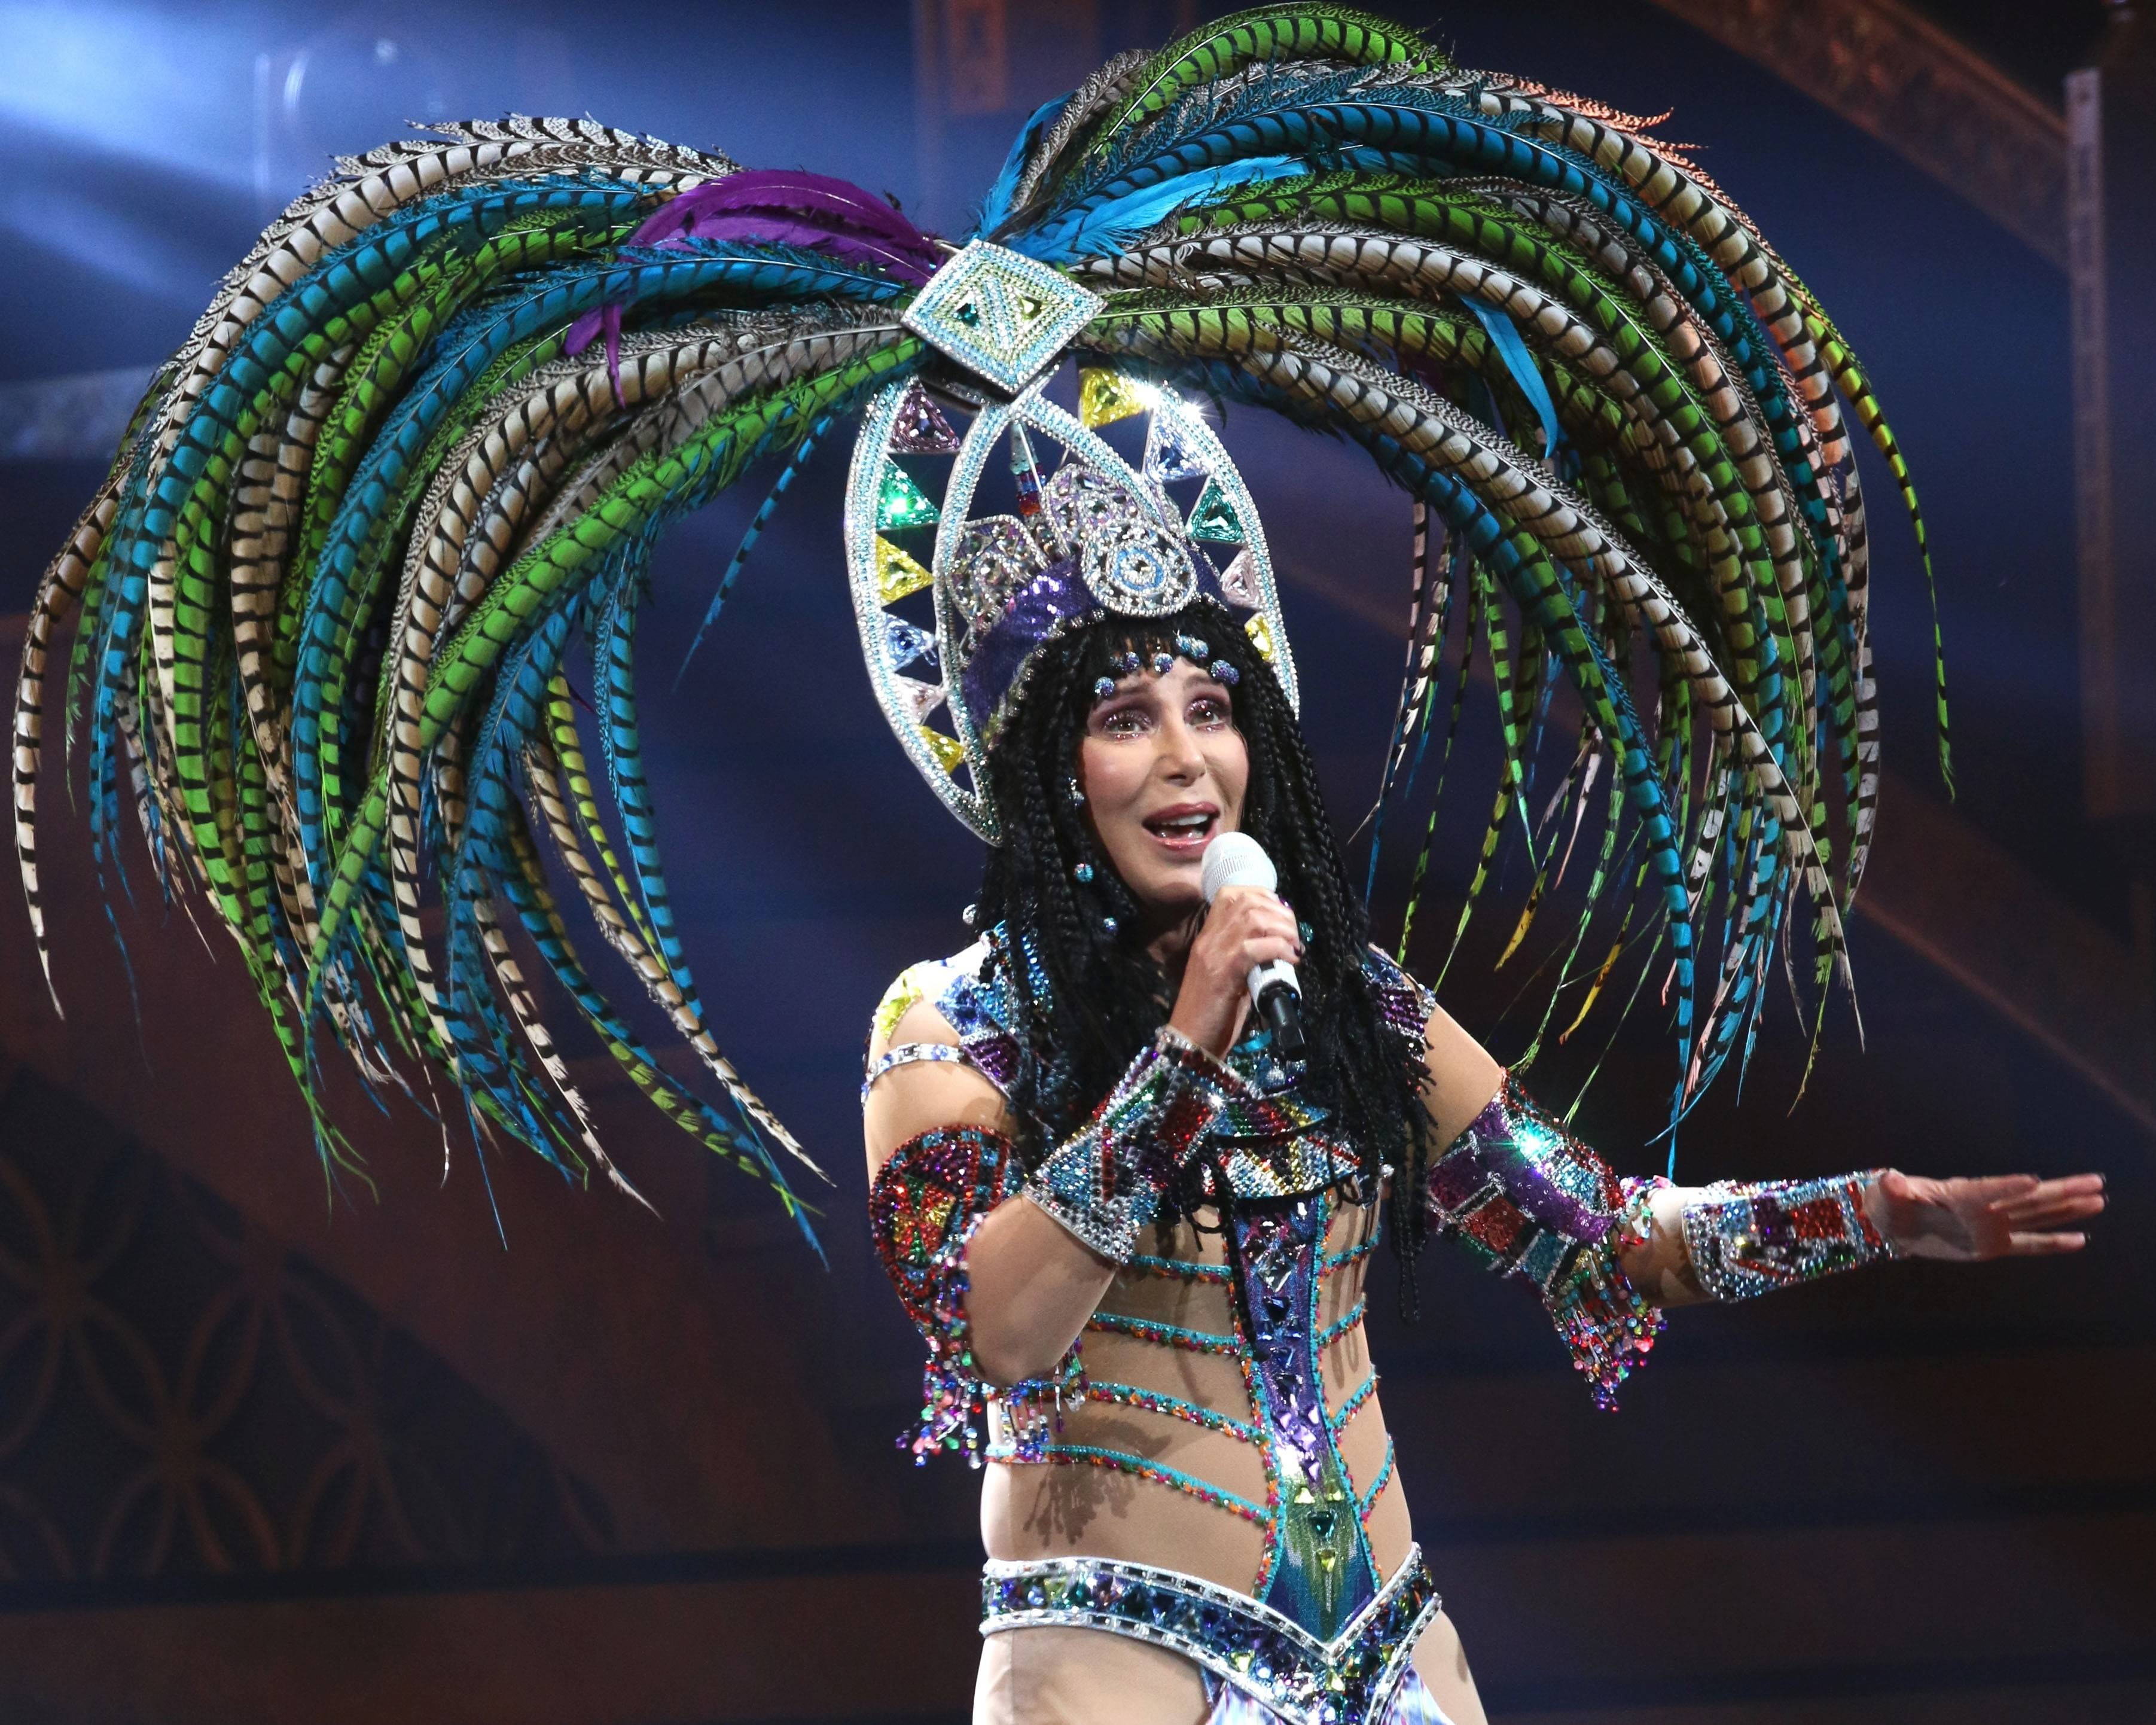 Cher brings her Dress to Kill Tour (D2K) with opening act Cyndi Lauper to the Allstate Arena in Rosemont at 8 p.m. on Saturday, June 7.